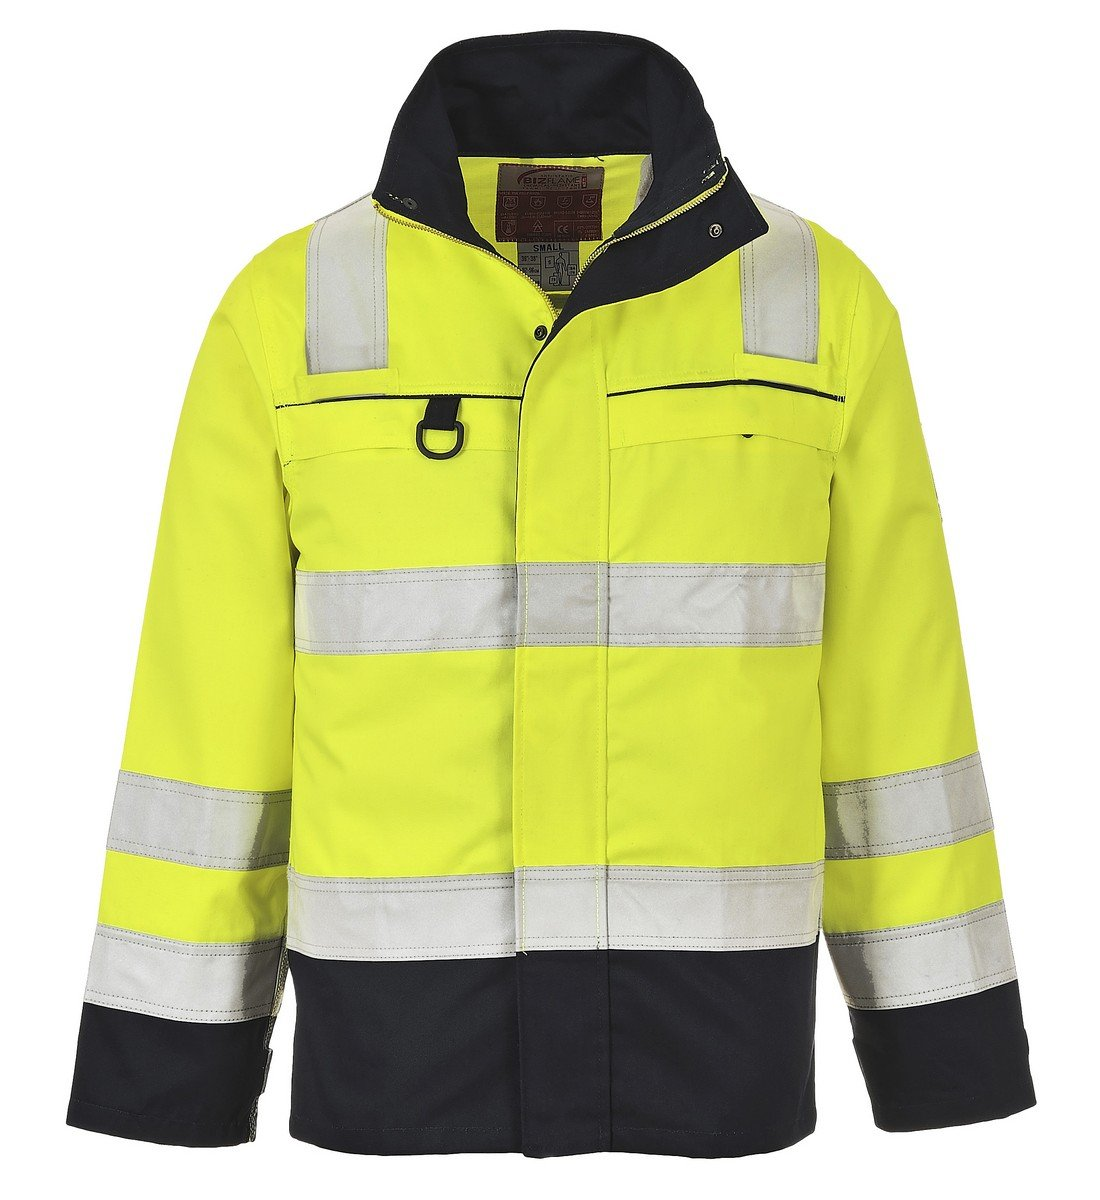 e4ba733972bf Portwest Hi Vis Multi-Norm FR Anti-Static Jacket FR61 Yellow and Navy Blue